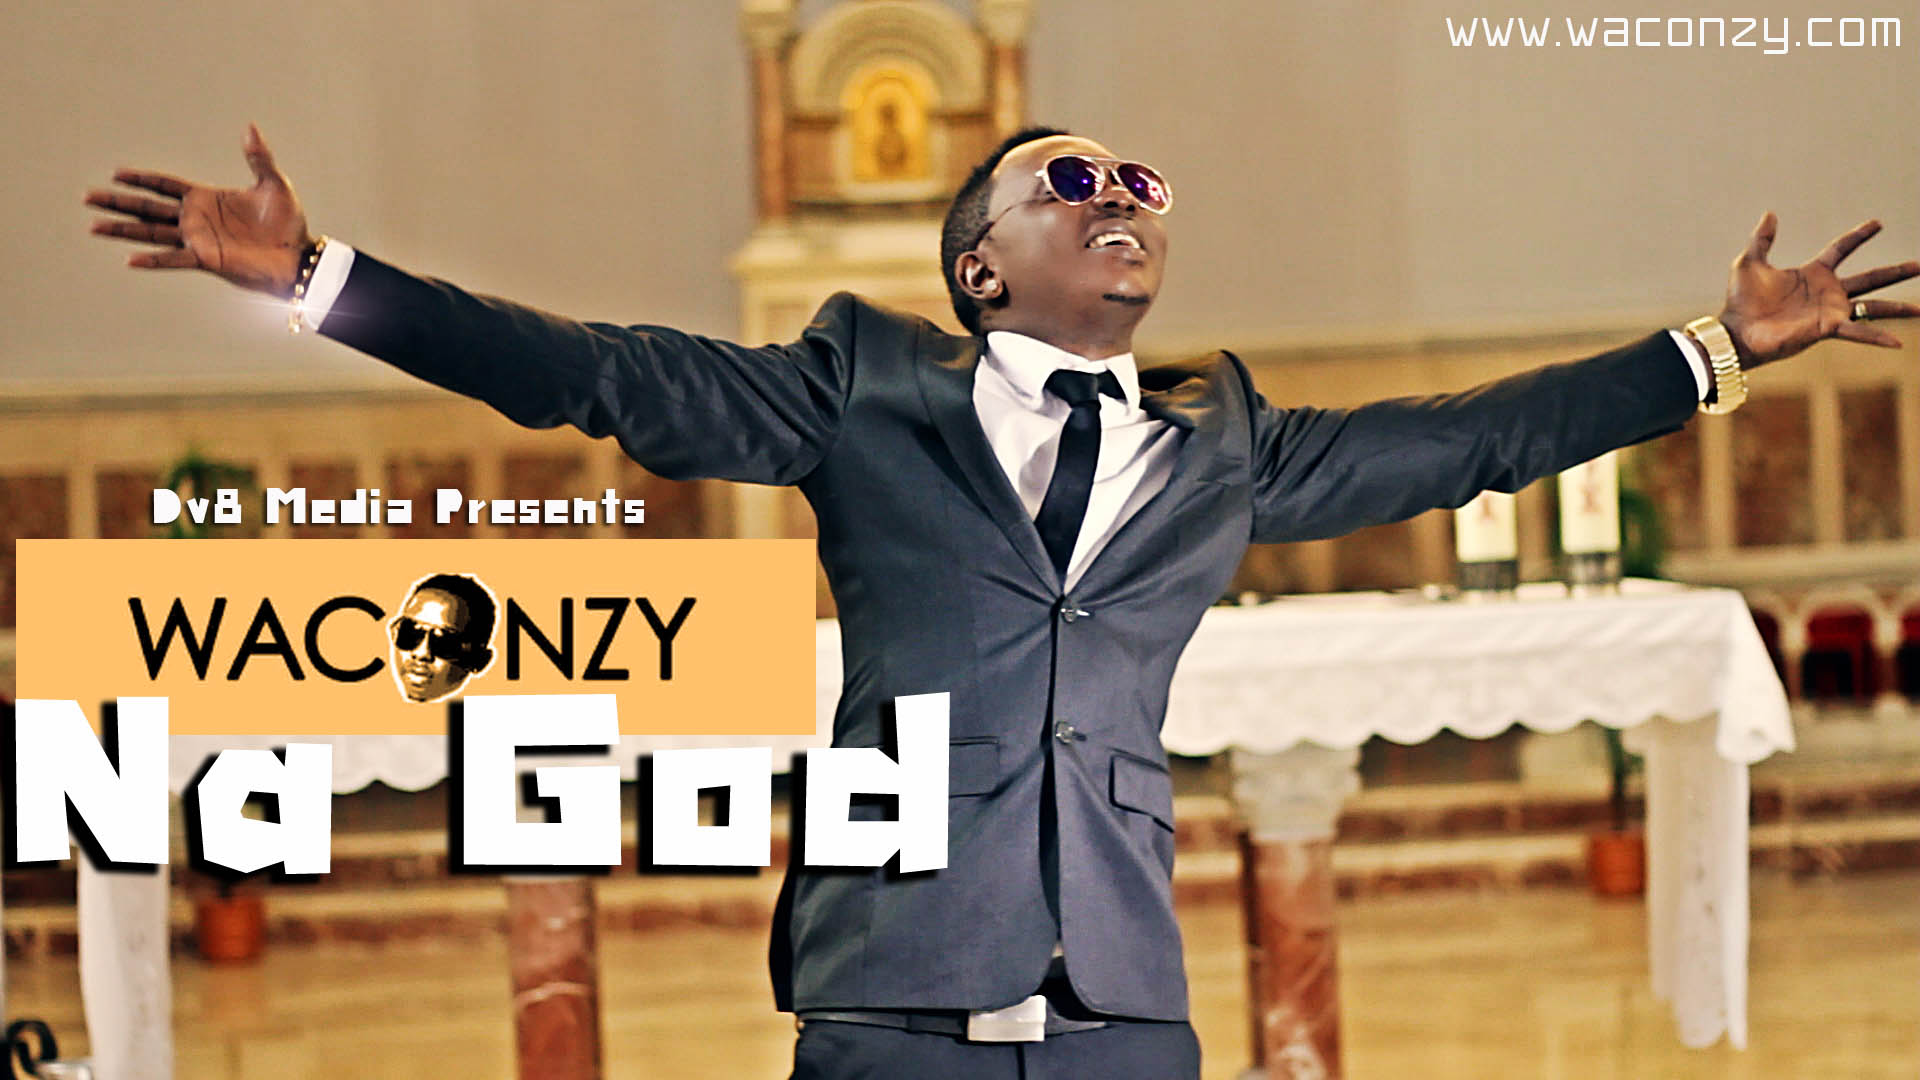 Waconzy-na-God-copy